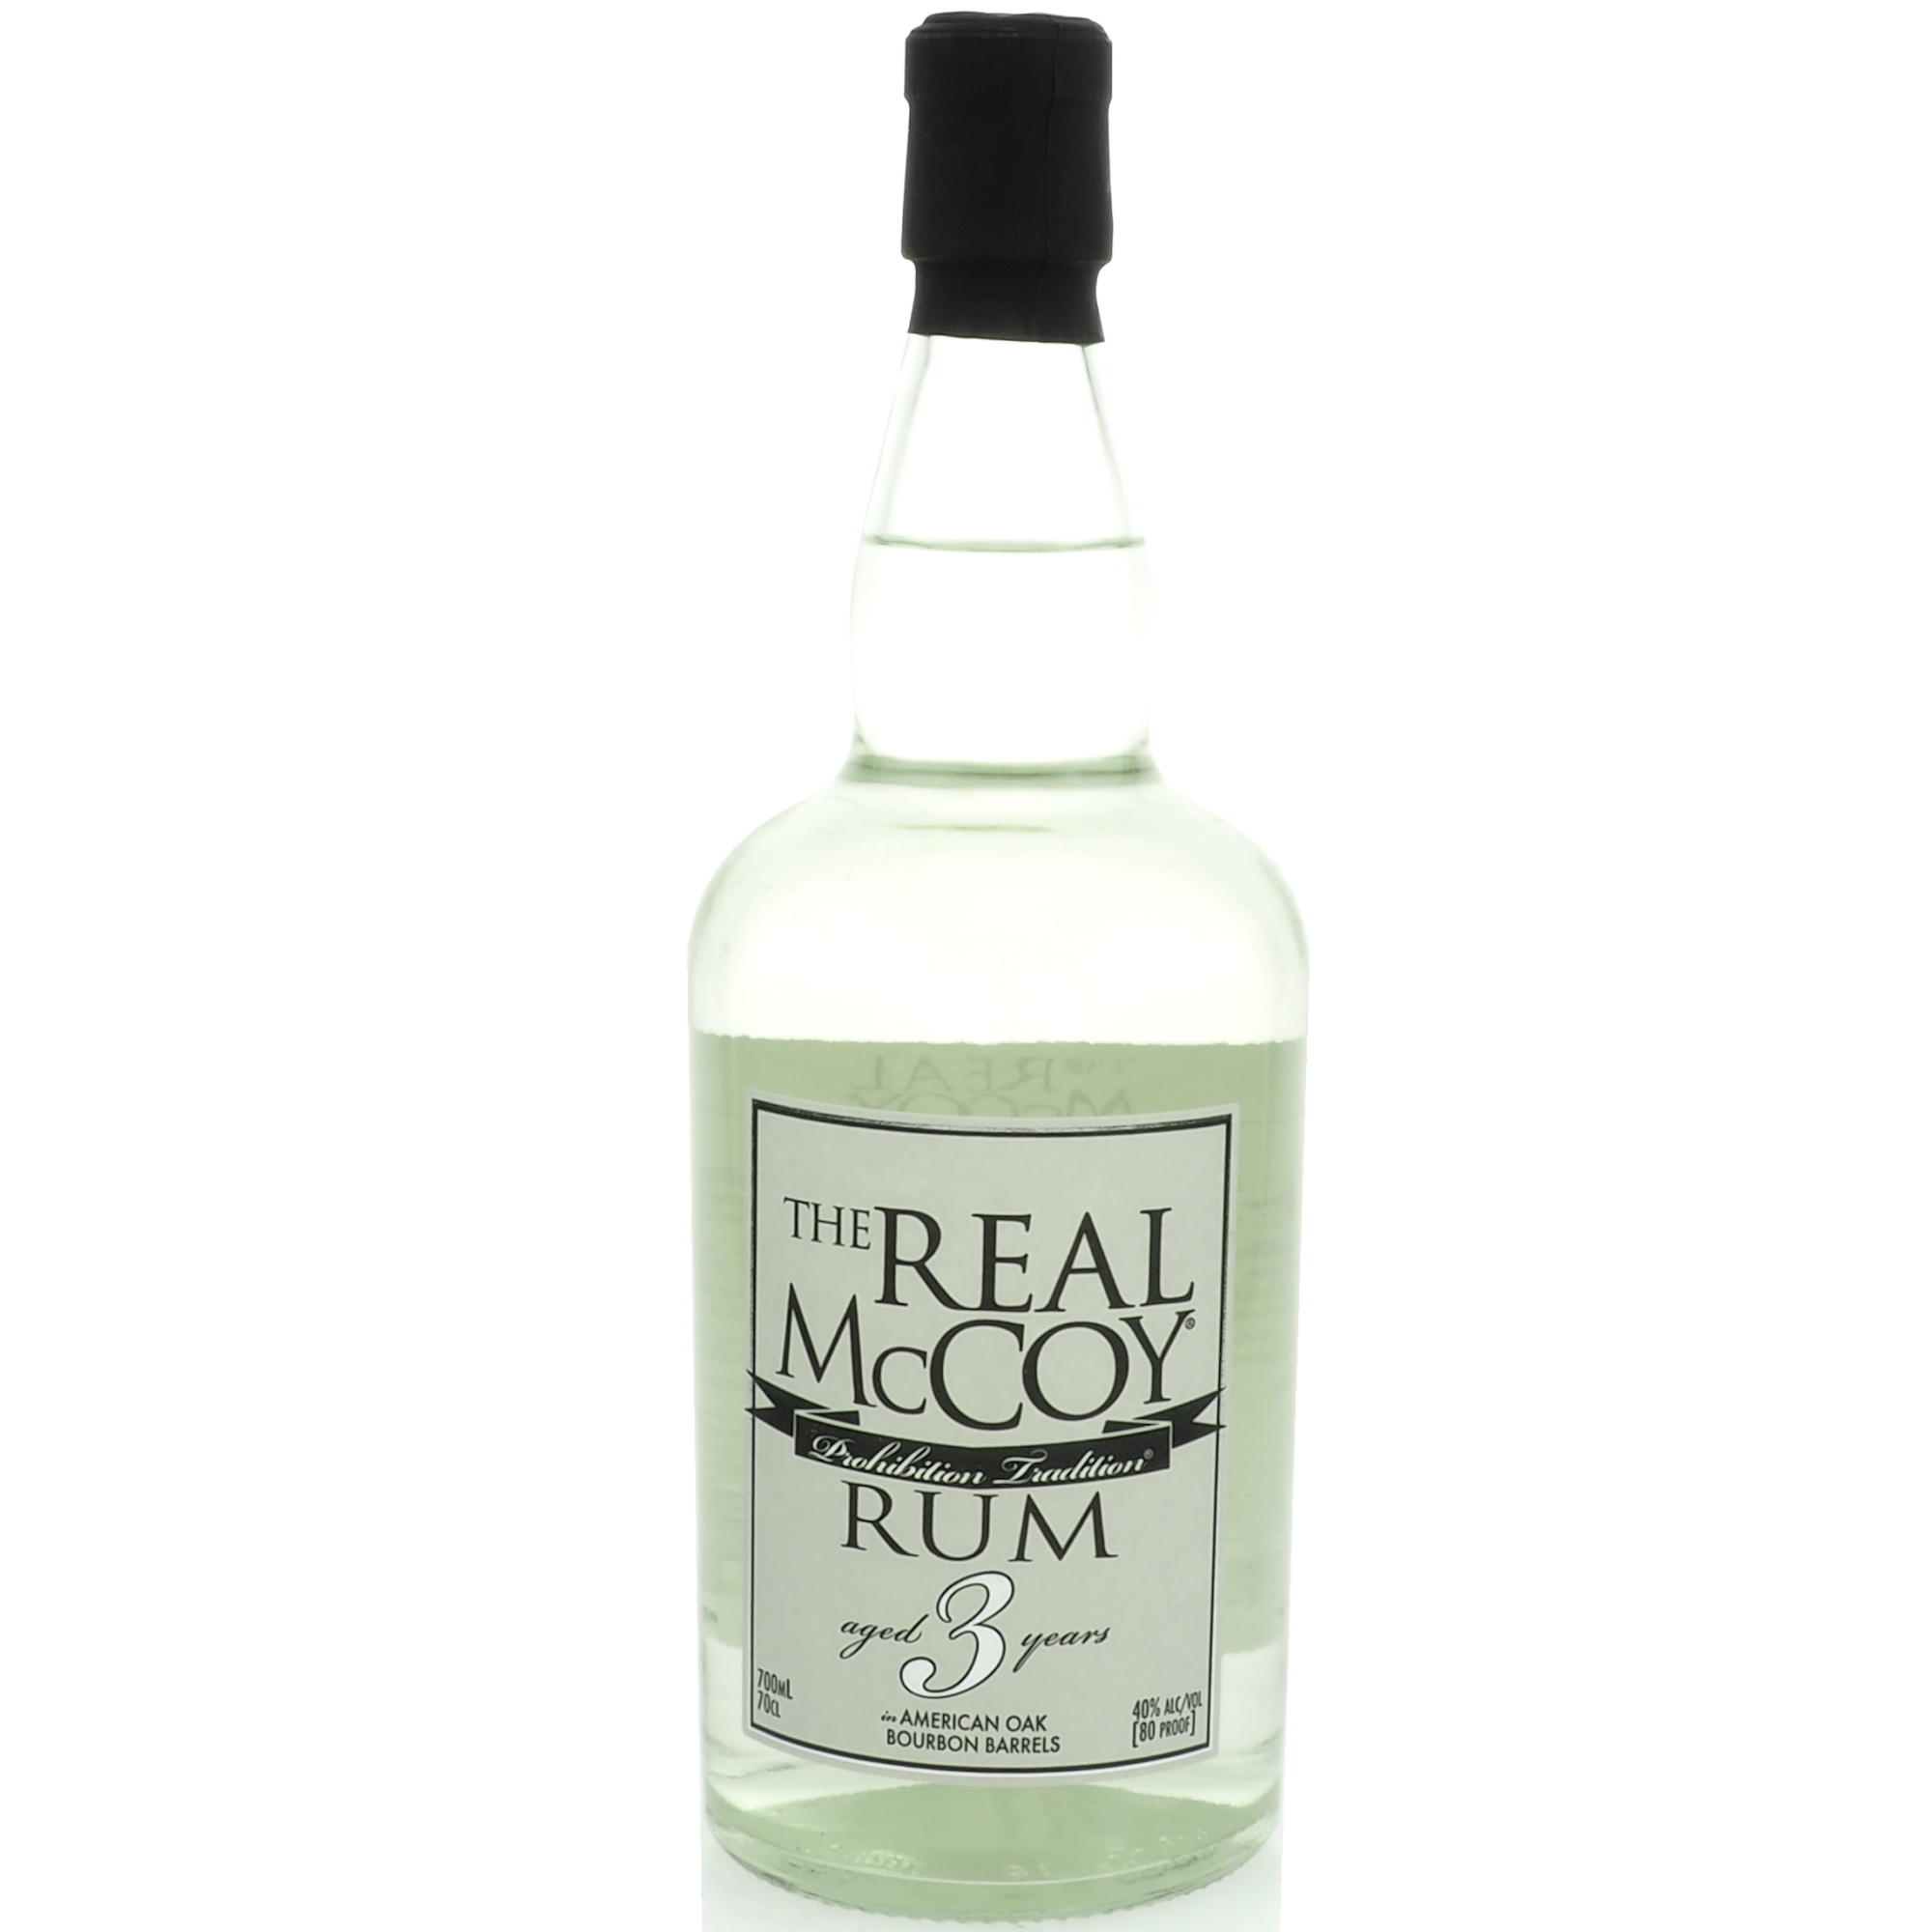 The-Real-McCoy-Rum-Aged-3-Years